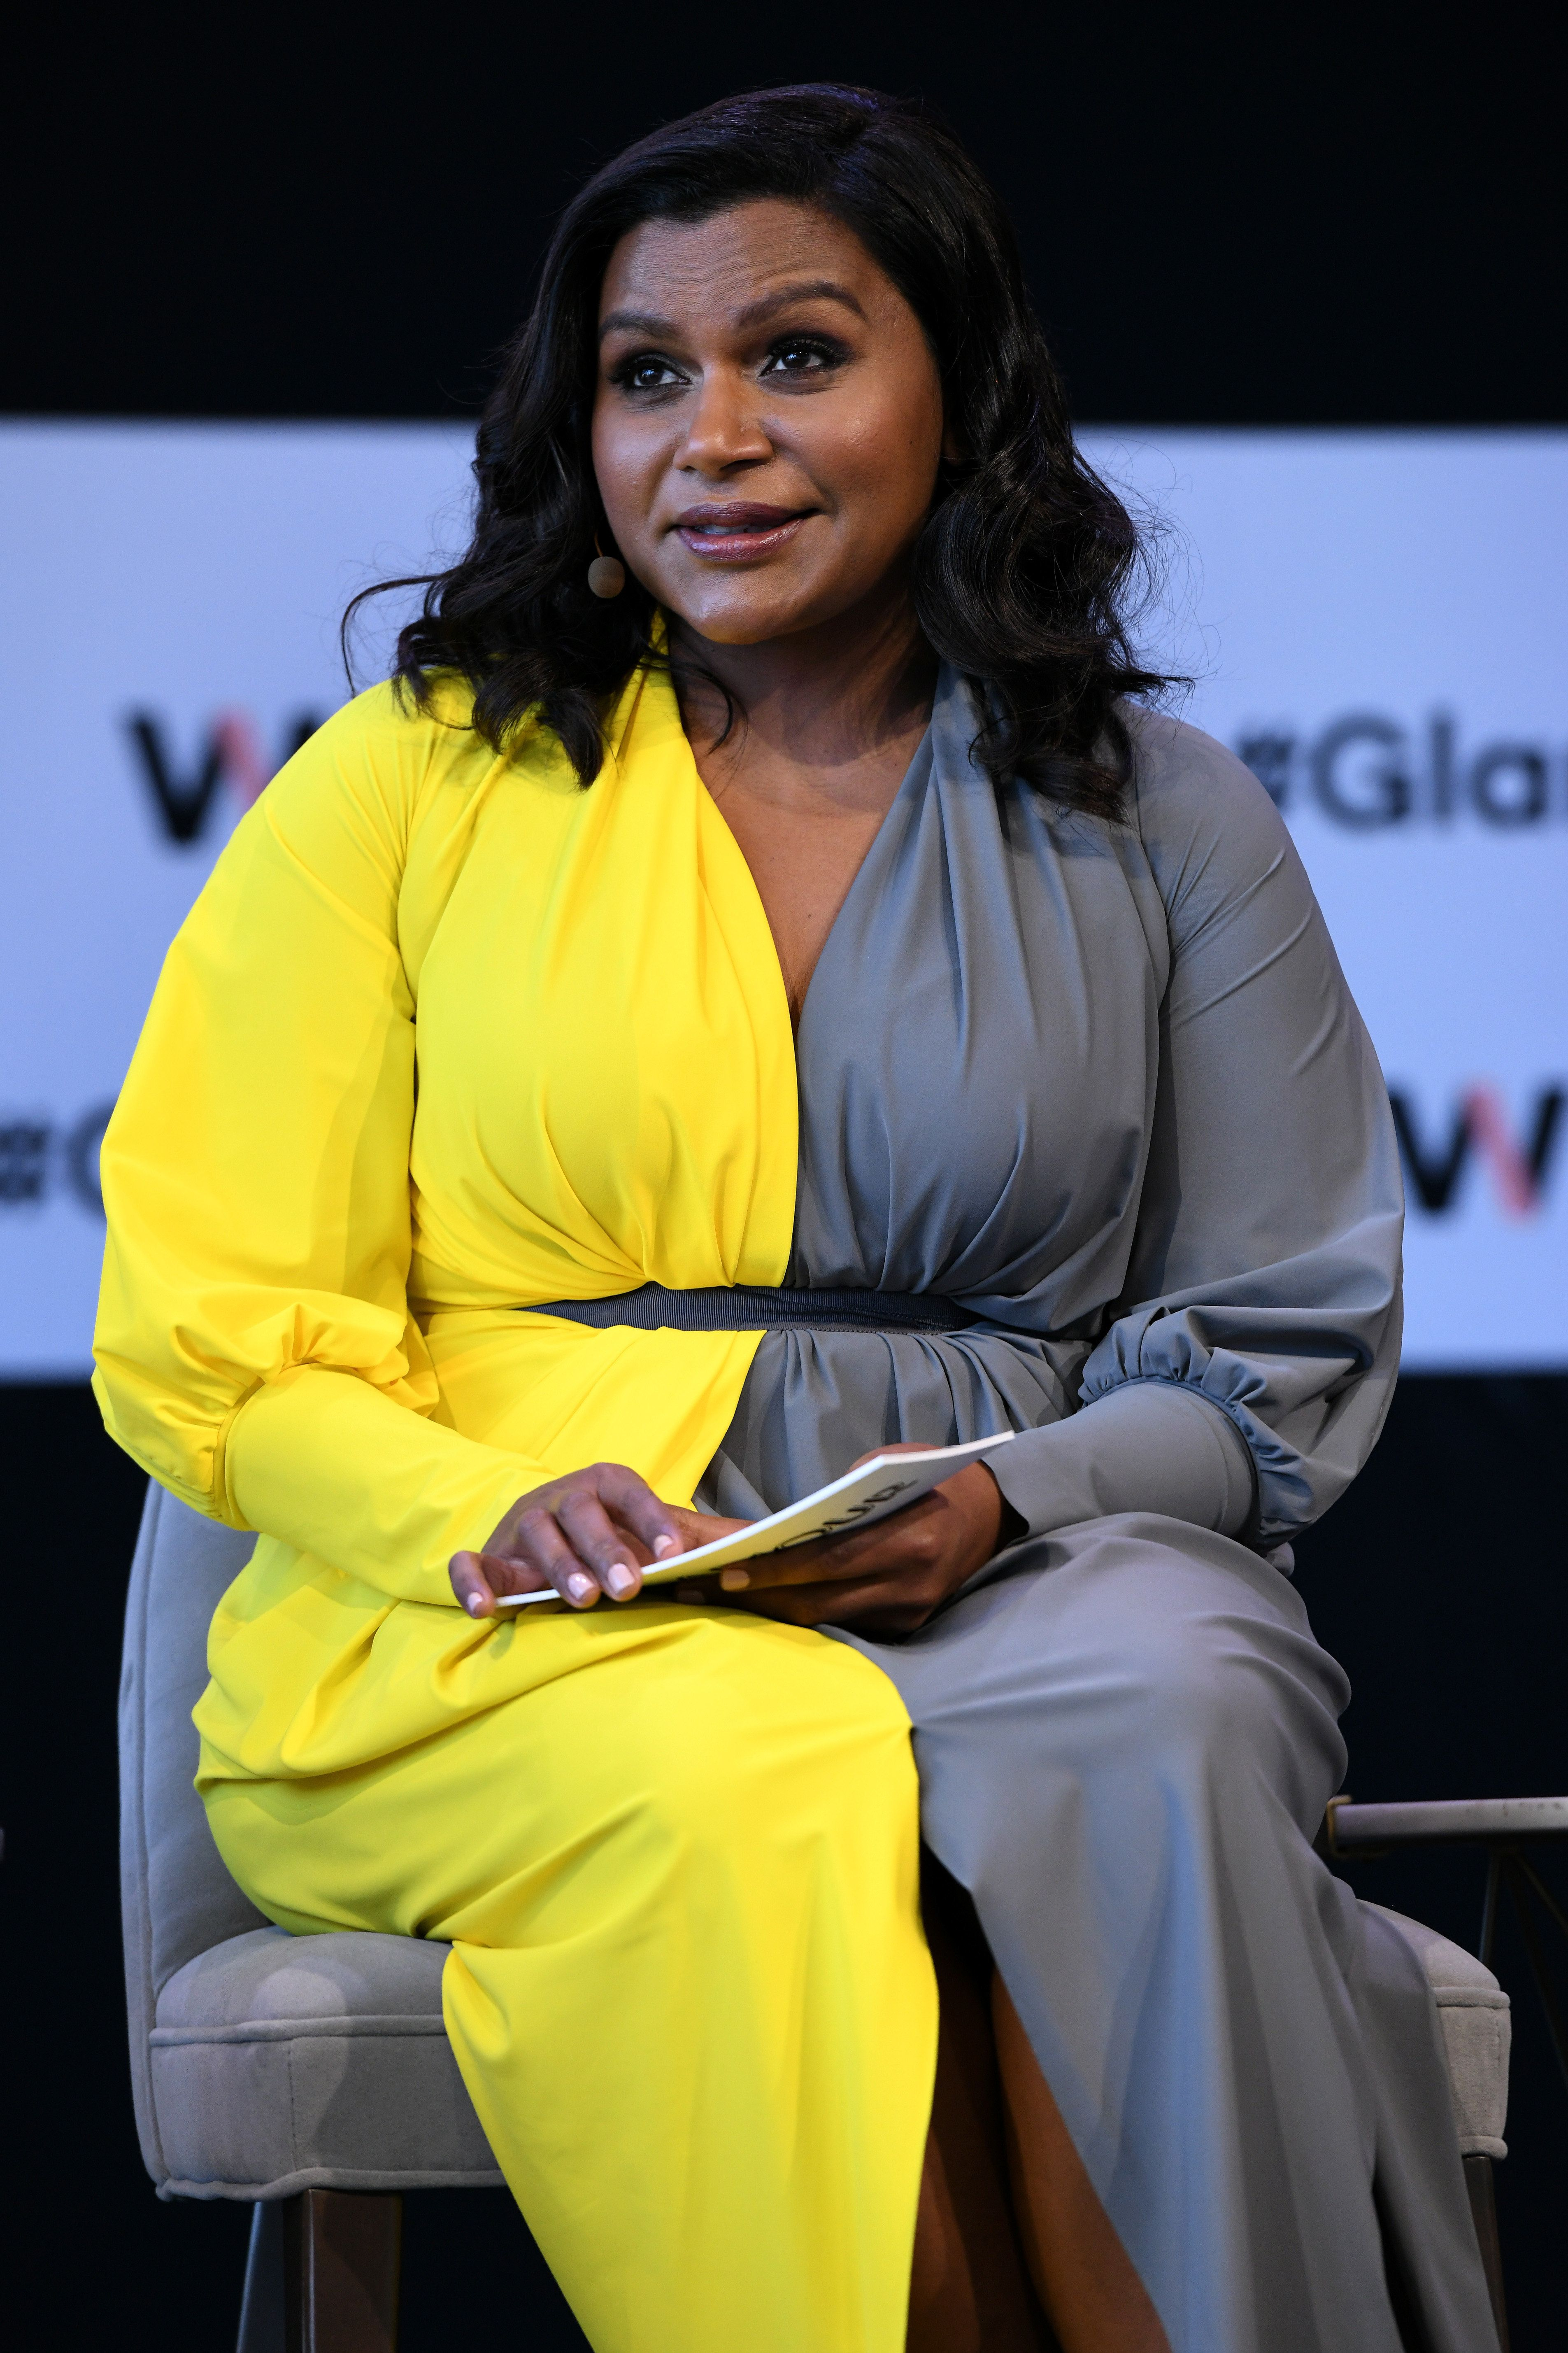 NEW YORK, NY - NOVEMBER 11:  Mindy Kaling speaks onstage during 'Closing The Dream Gap: Showing Girls (and Ourselves) What's Next' panel at 2018 Glamour Women Of The Year Summit:  Women Rise at Spring Studios on November 11, 2018 in New York City.  (Photo by Craig Barritt/Getty Images for Glamour)